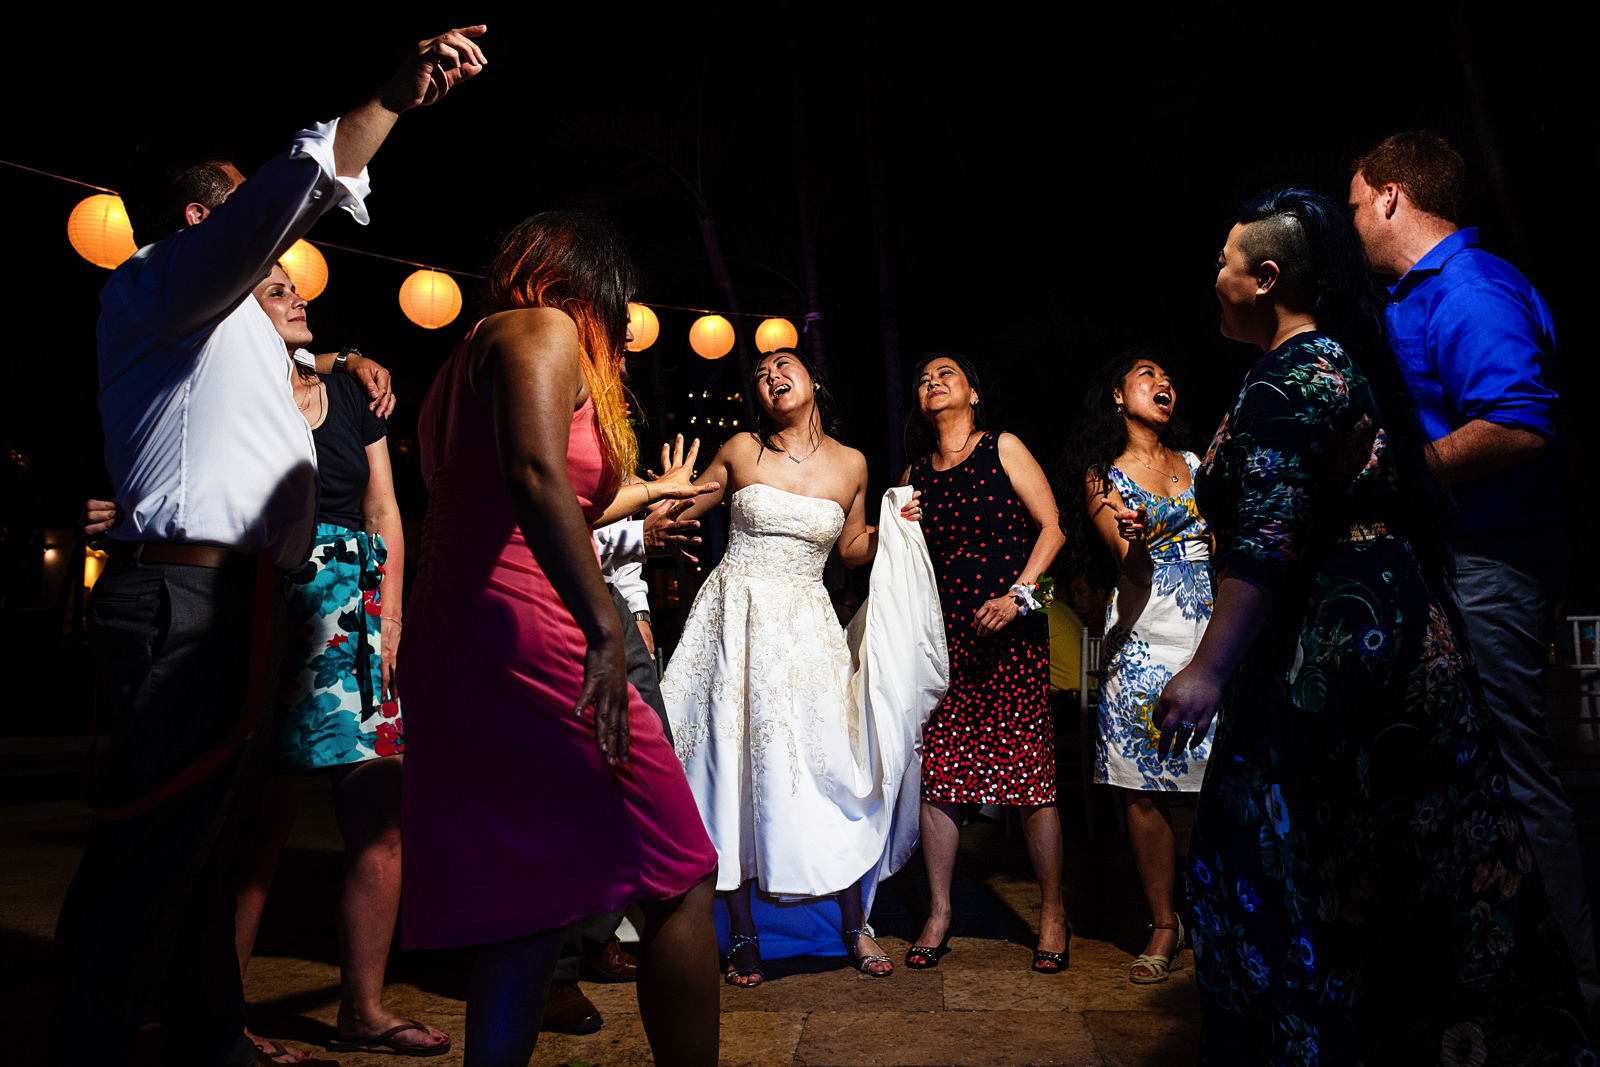 Bride and mom dance in group with other wedding guests